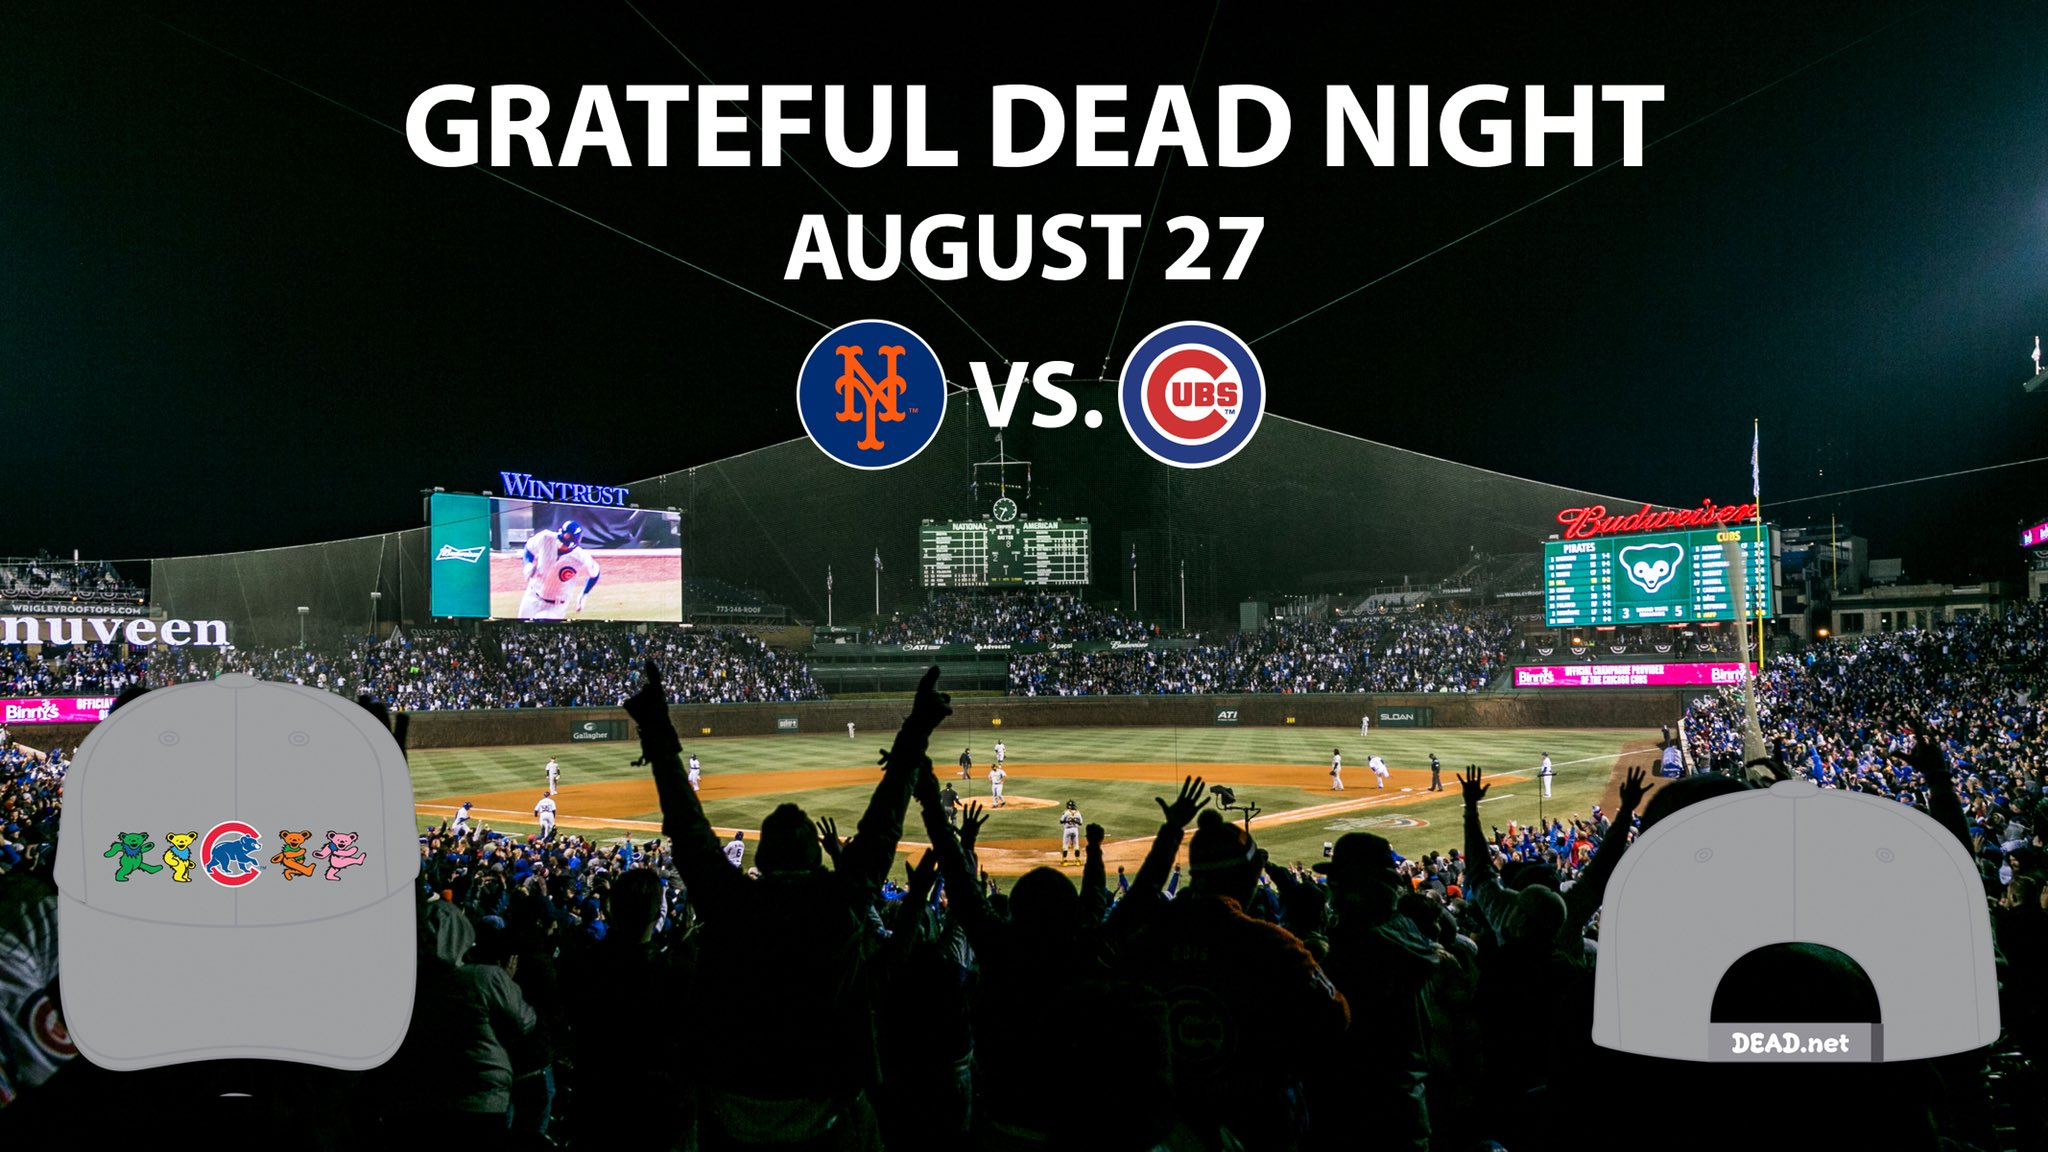 Calling all Deadheads! Join us for Grateful Dead Night at #WrigleyField August 27: https://t.co/XlCJ6j6qrj https://t.co/quZlExyqOO